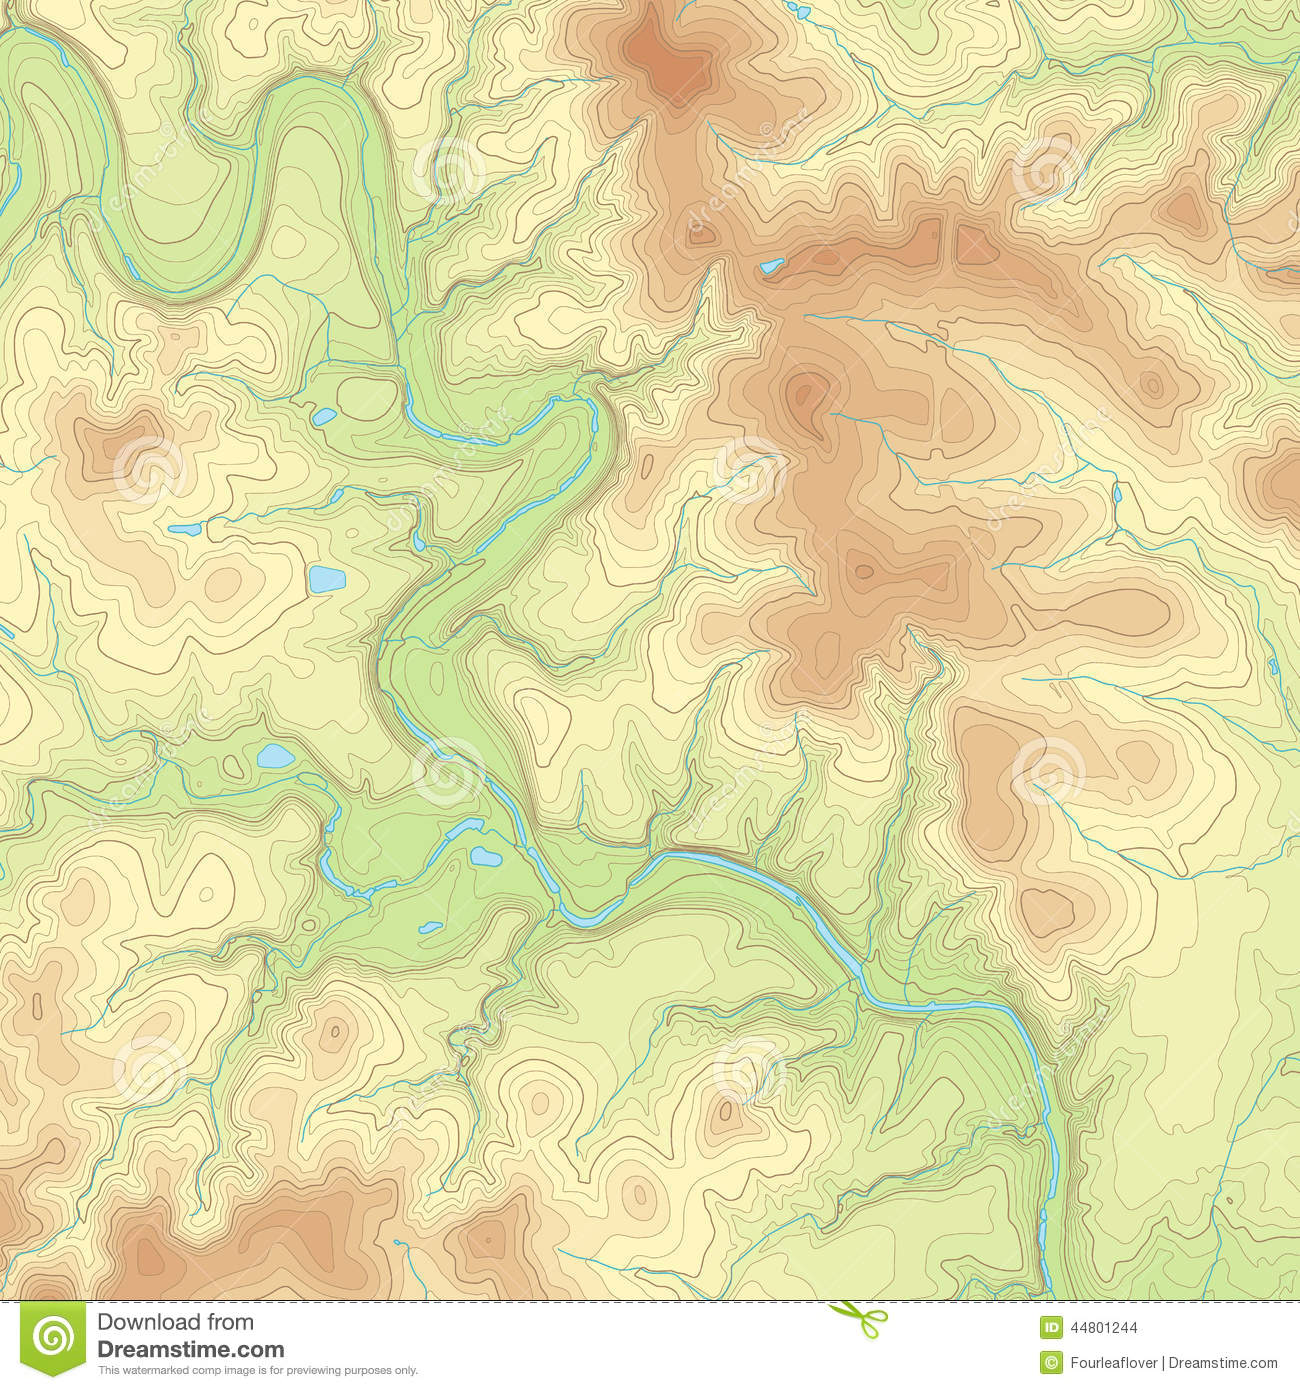 Colored Topographic Map Stock Vector Image Of Physical - Topographical map of texas